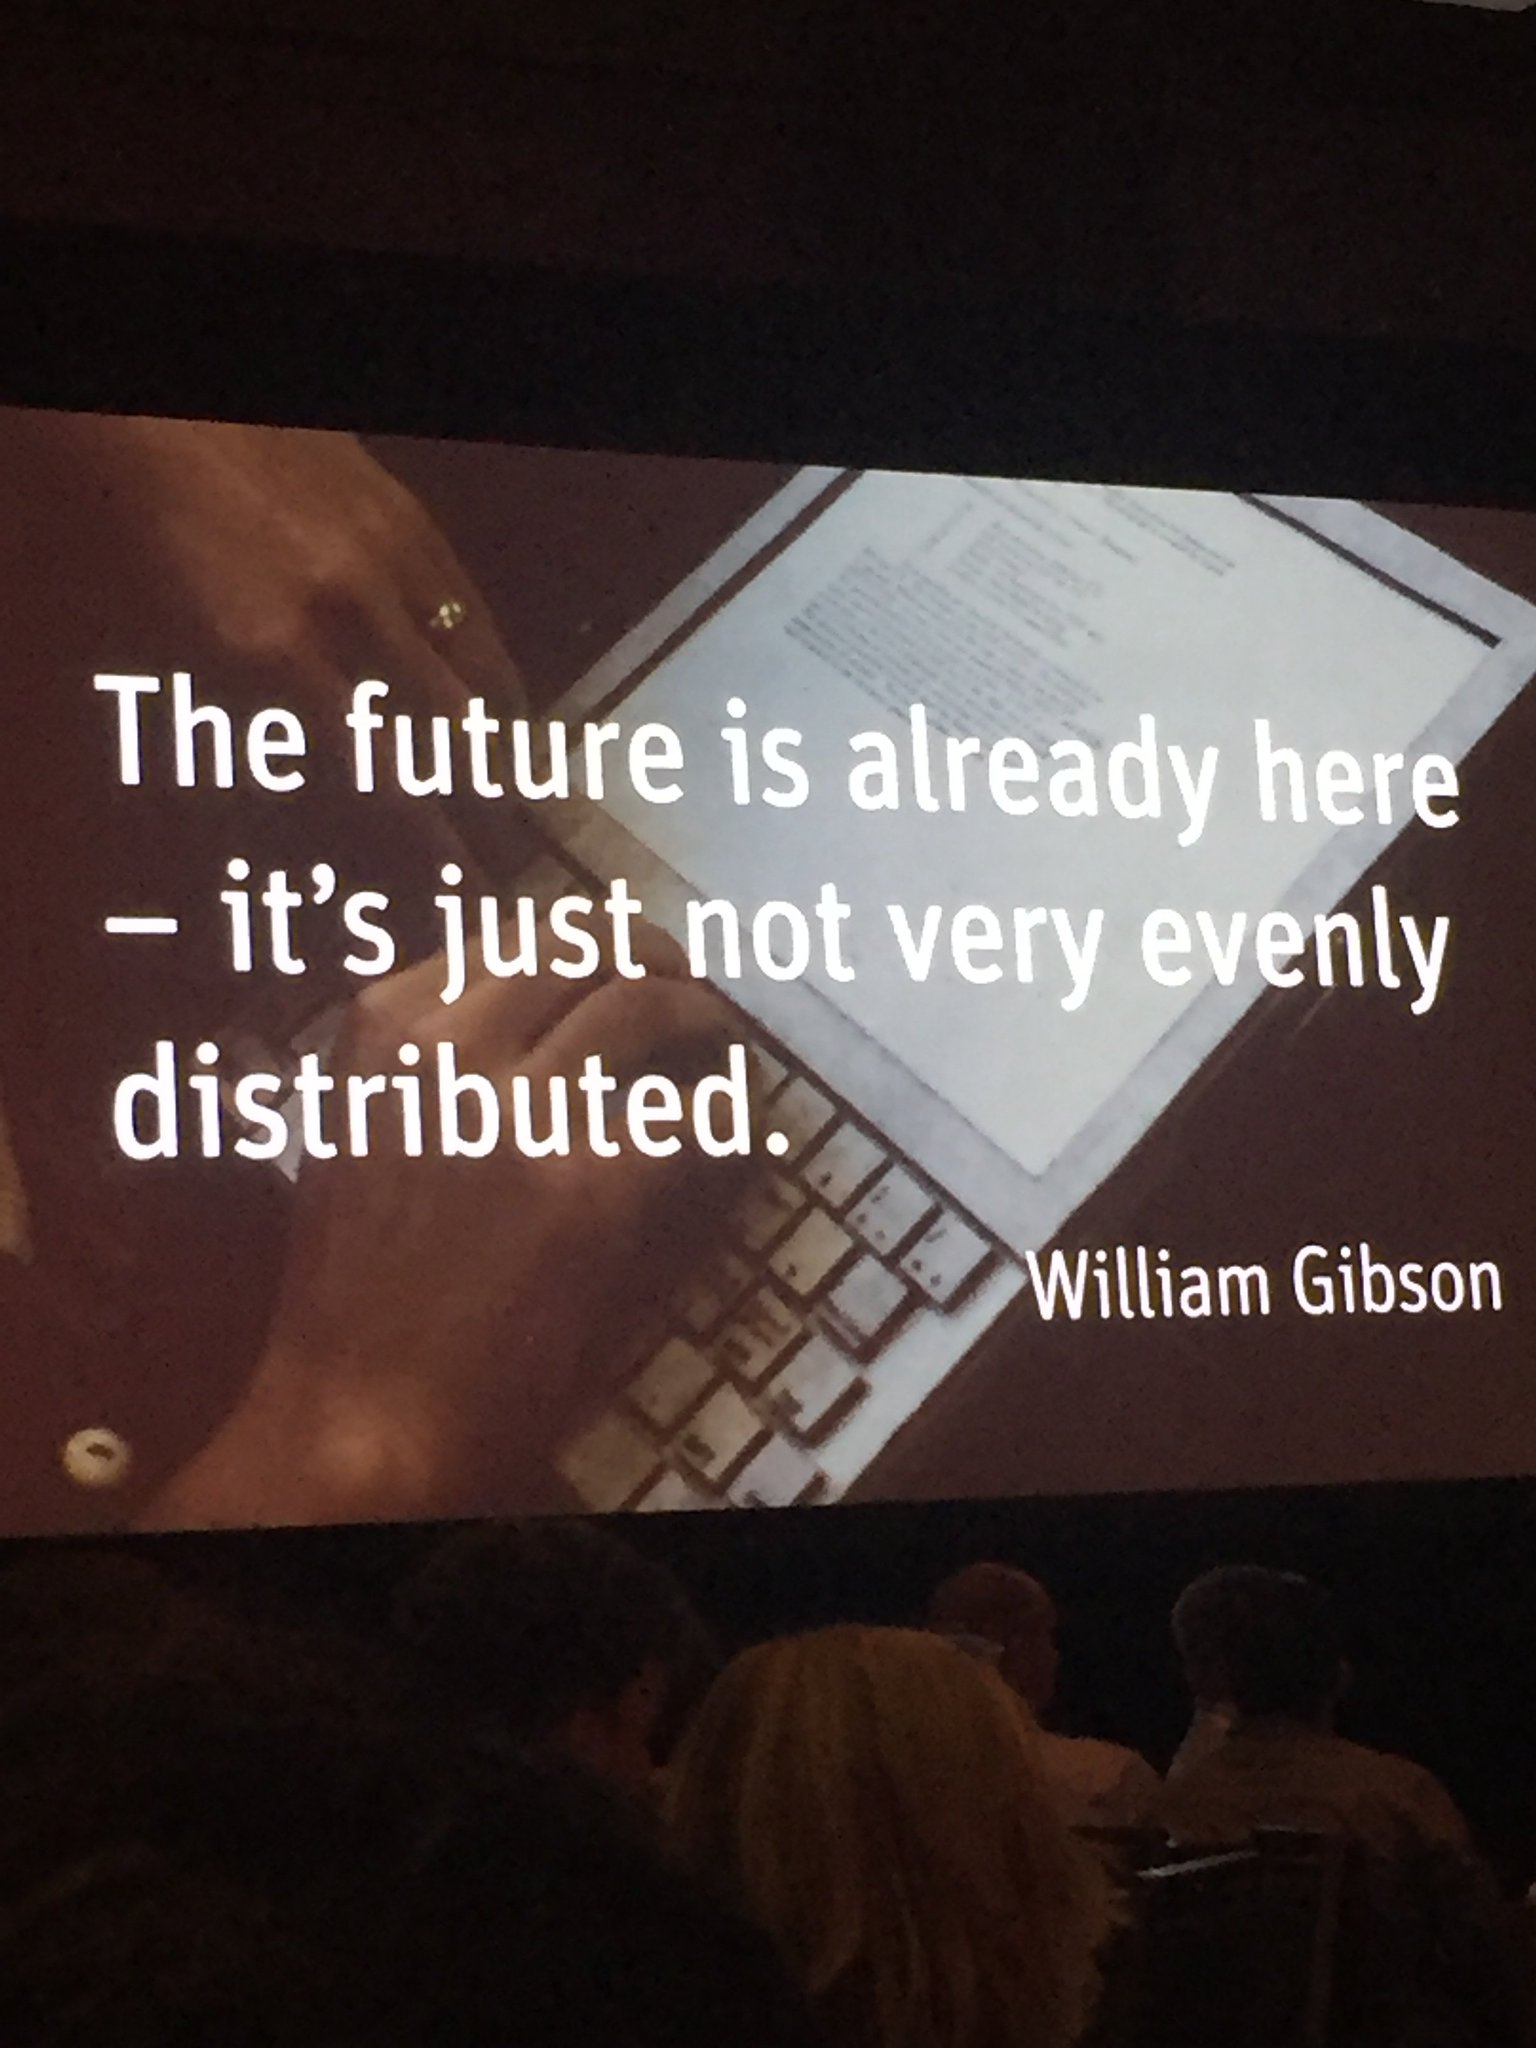 First day of #A2OPTIMIZE and we're already covering a ton of ground #innovation #ChangingAging https://t.co/WqNHZxLnOh